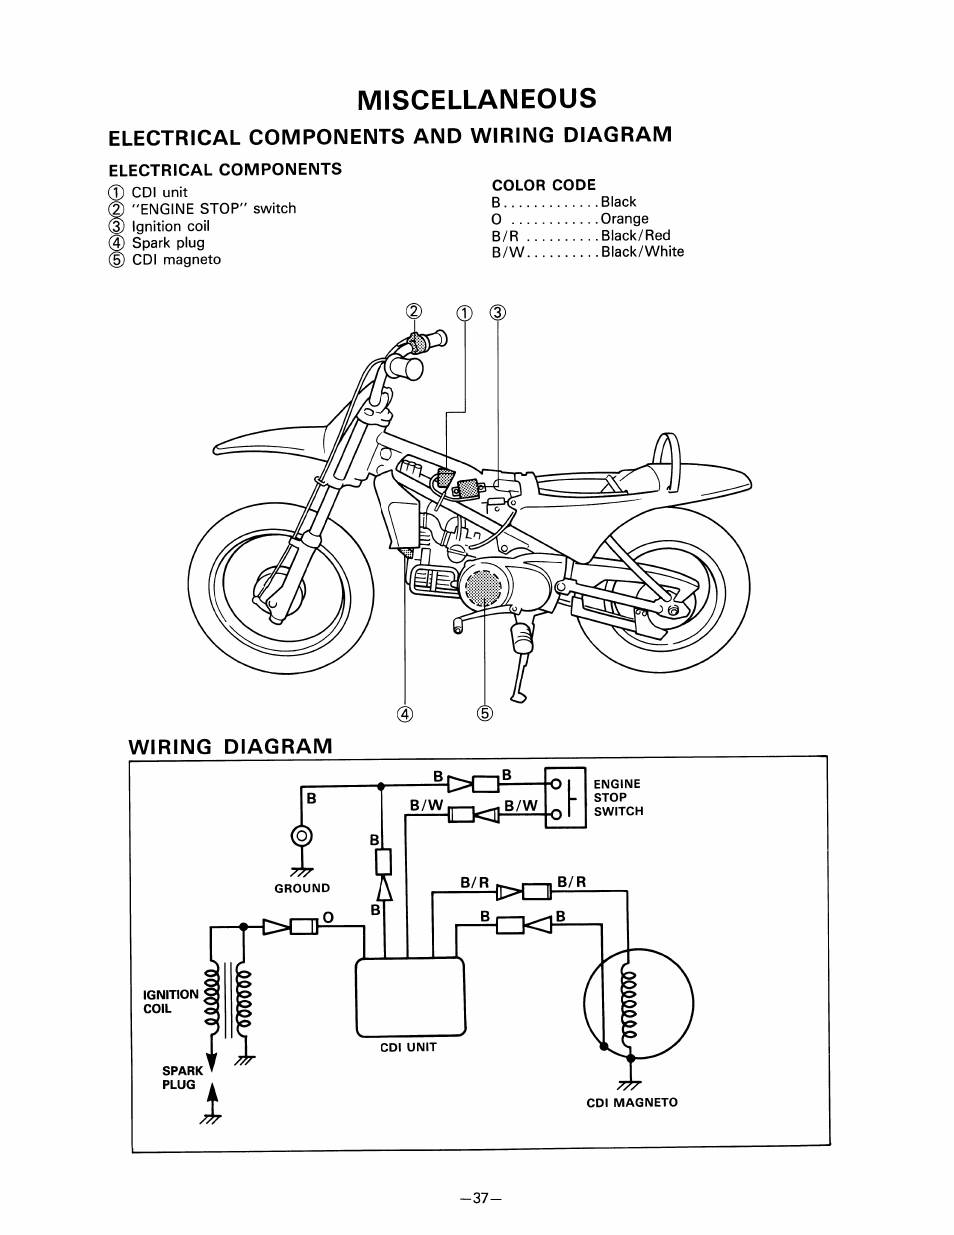 Miscellaneous Electrical Components And Wiring Diagram Home Red Black White Yamaha Pw80 User Manual Page 49 64